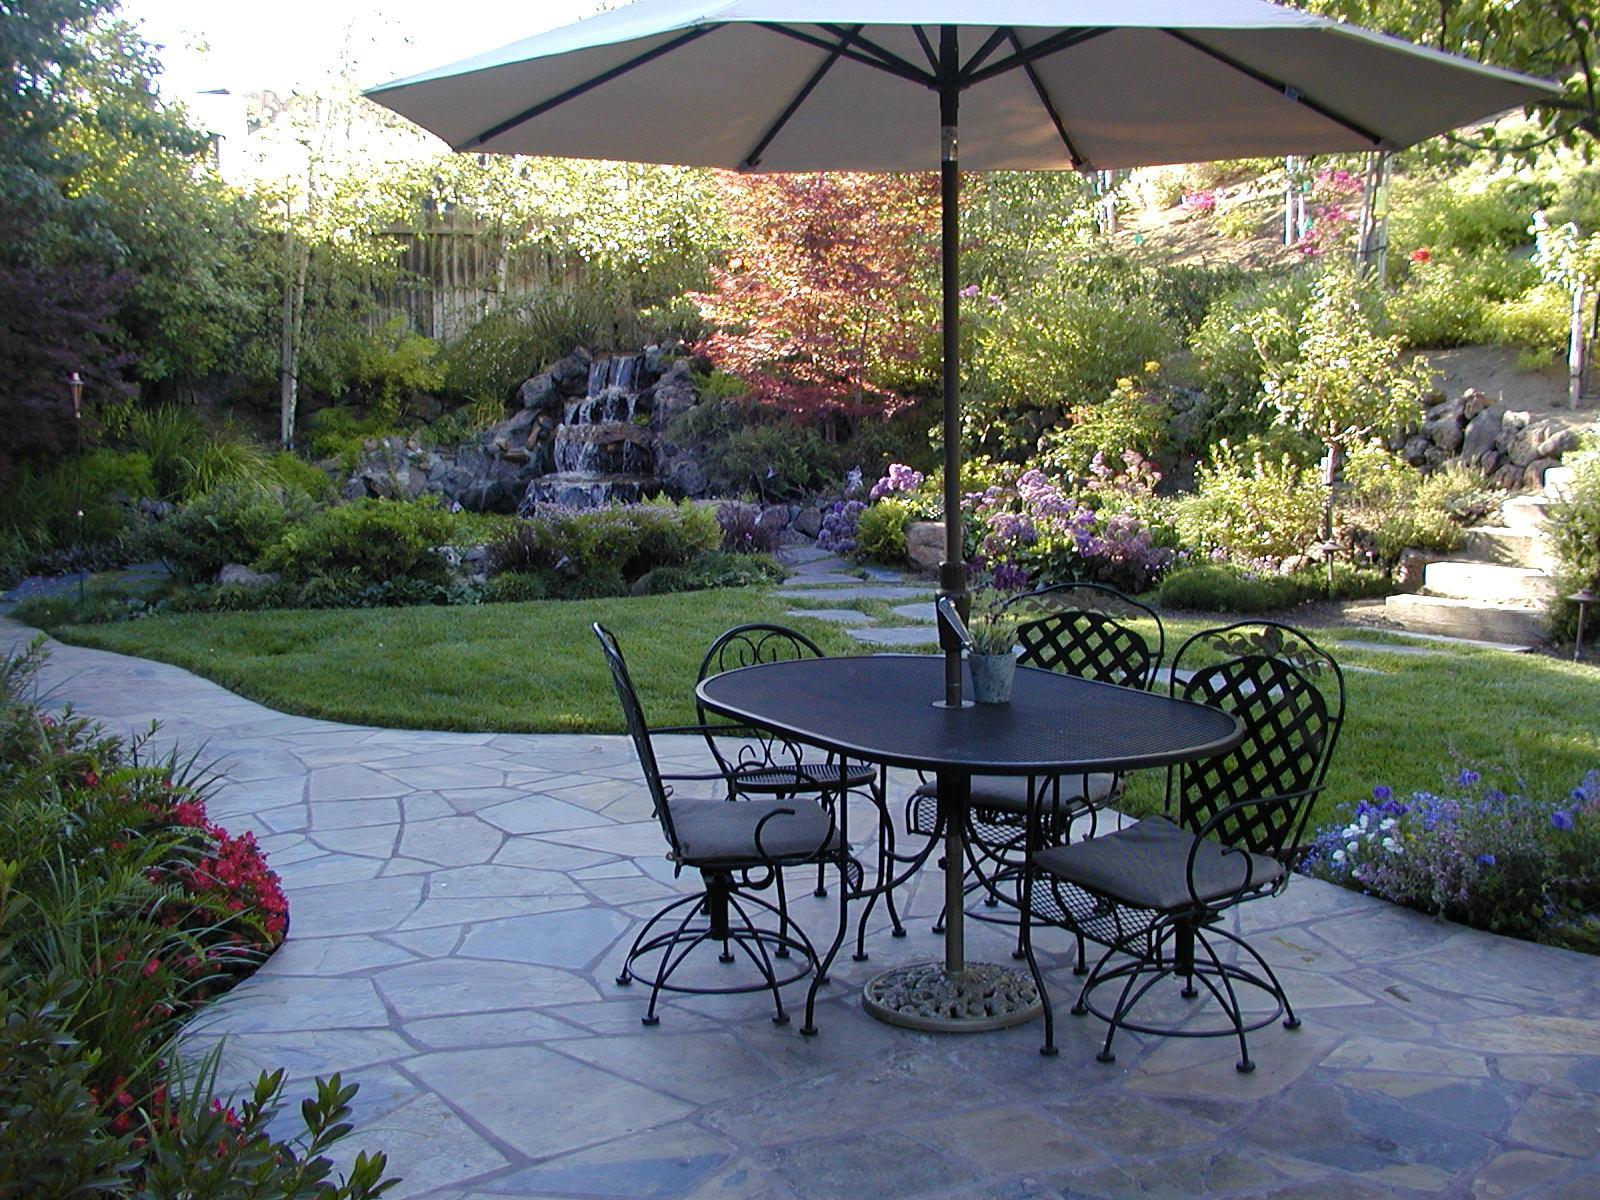 ca orinda patio paver moraga areas danville in benicia patios surrounding installation for